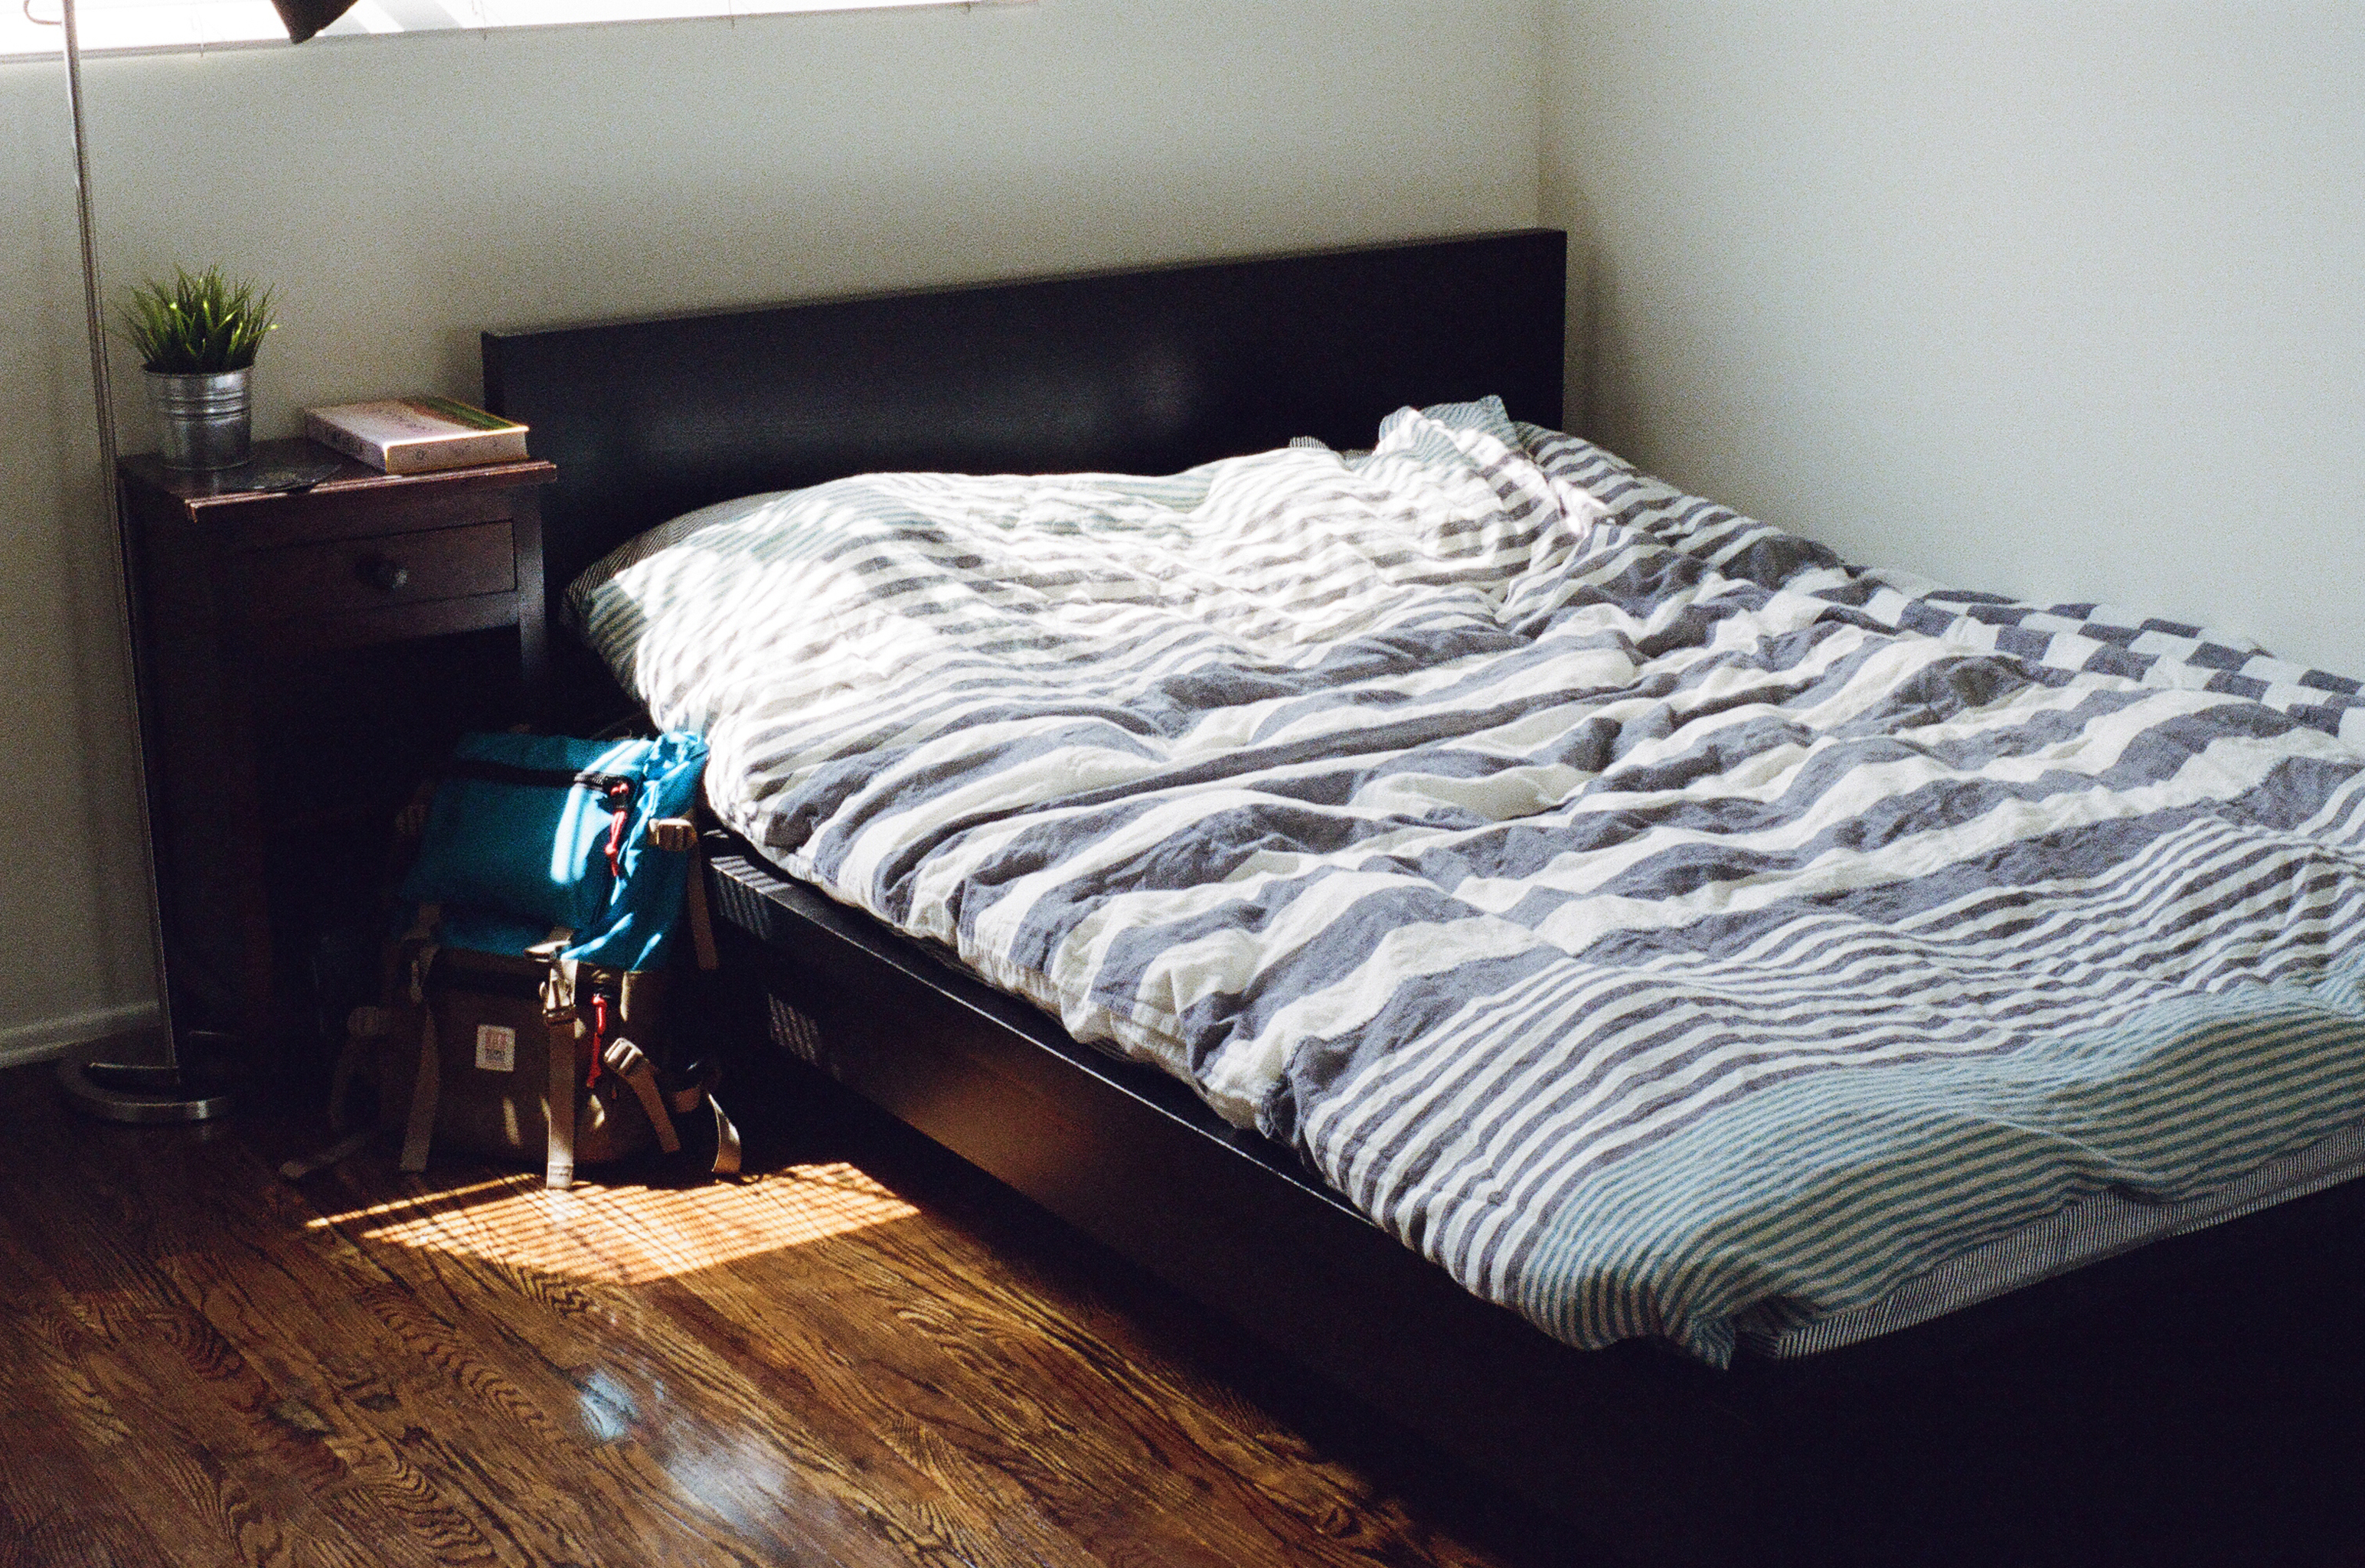 bed   bed  bedroom. Free stock photo of bed  bedroom  furniture